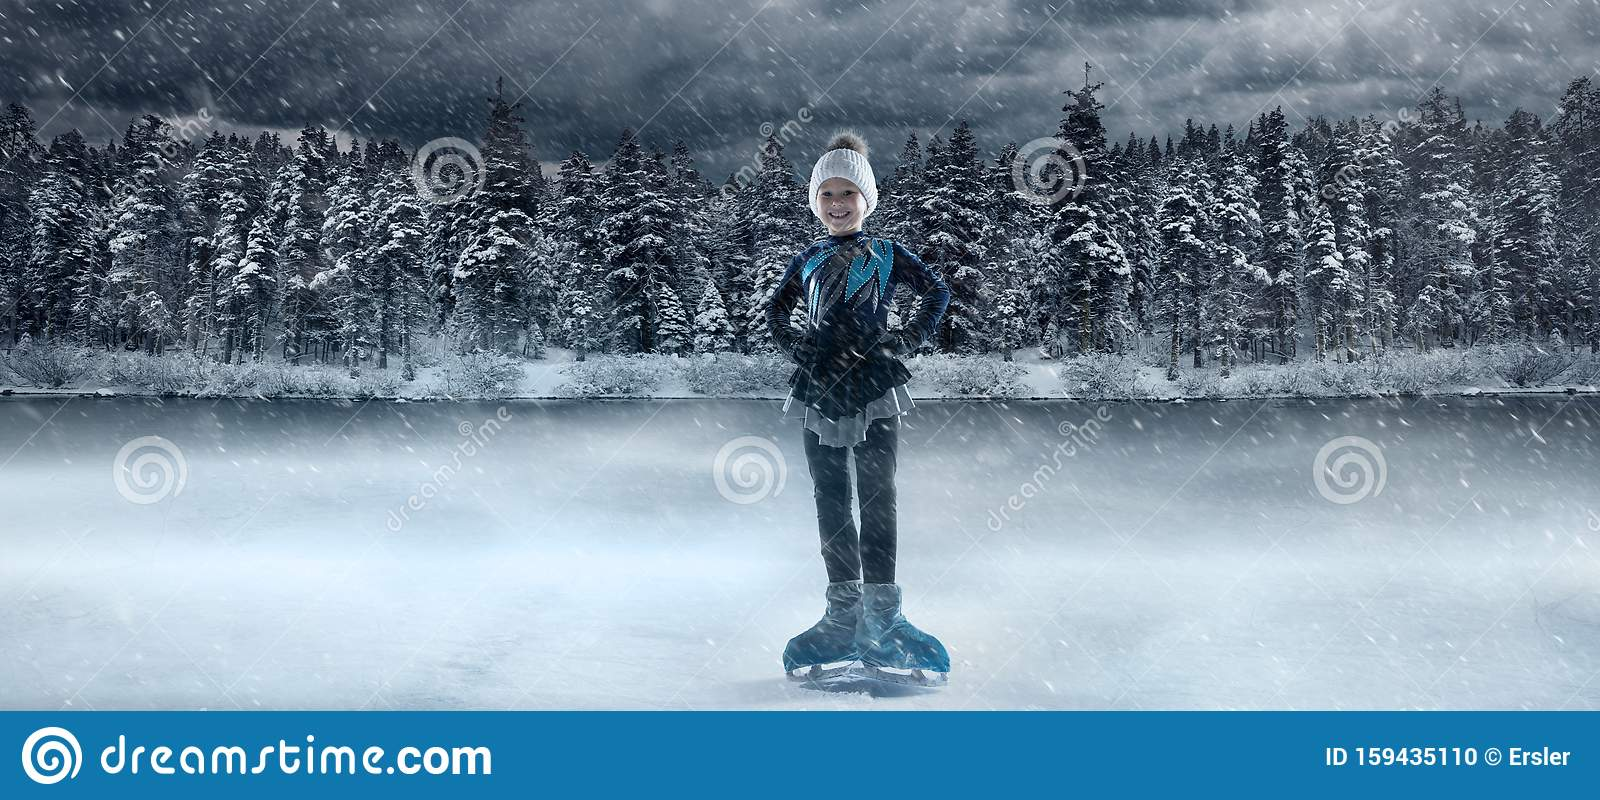 View of child figure skater on winter lake